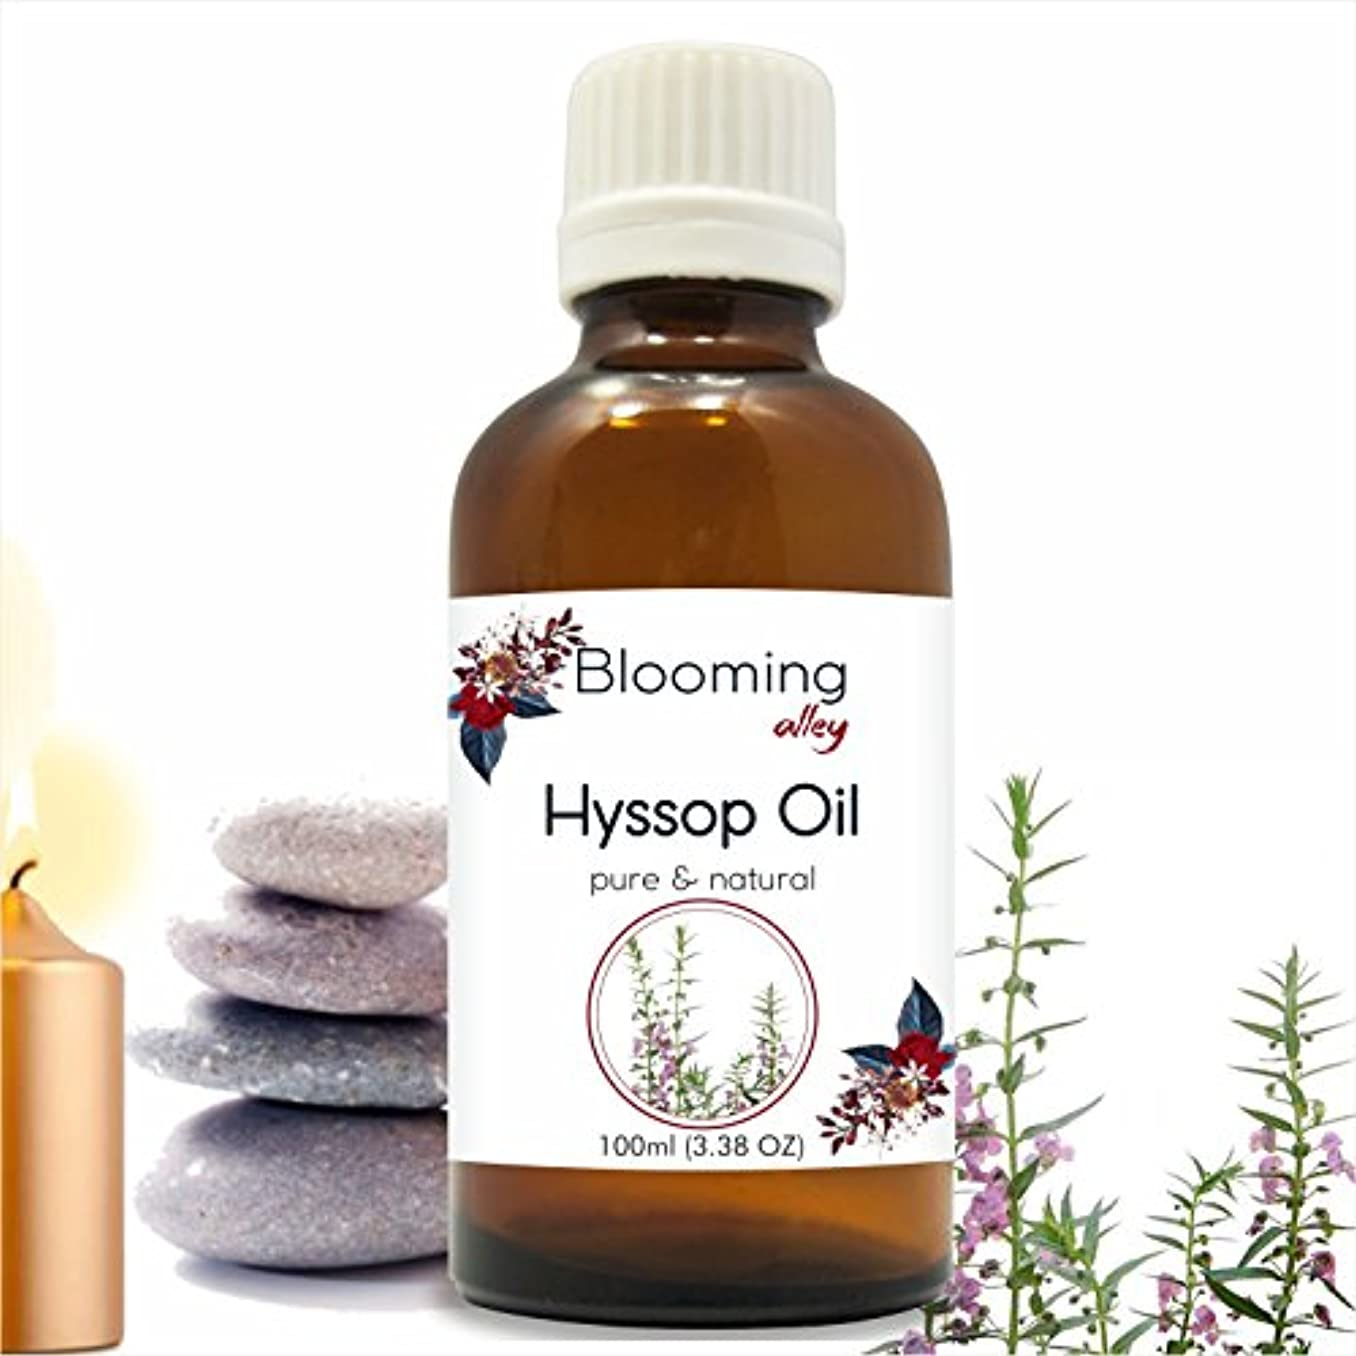 Hyssop Oil (Hyssopus Officinalis) Essential Oil 100 ml or 3.38 Fl Oz by Blooming Alley